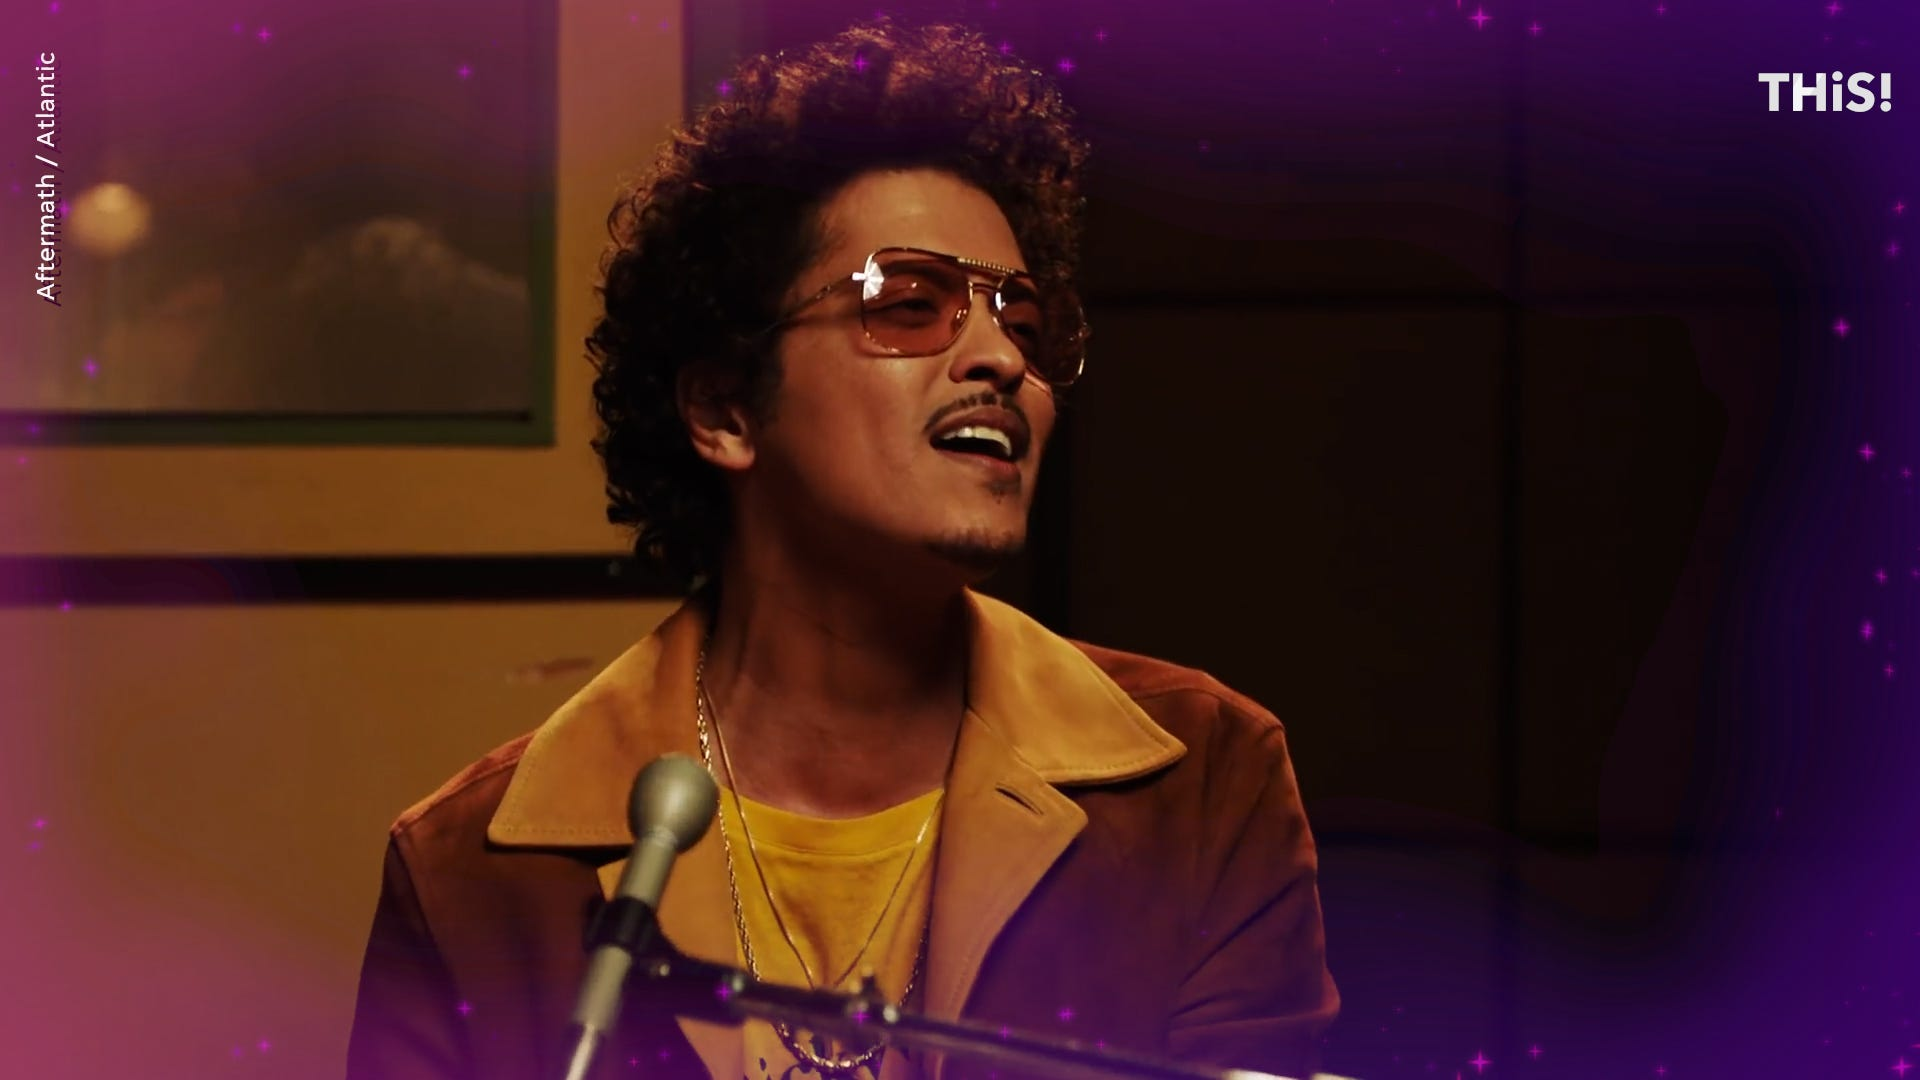 Bruno Mars' return plus Justin Bieber, Drake and Selena Gomez highlight new music releases